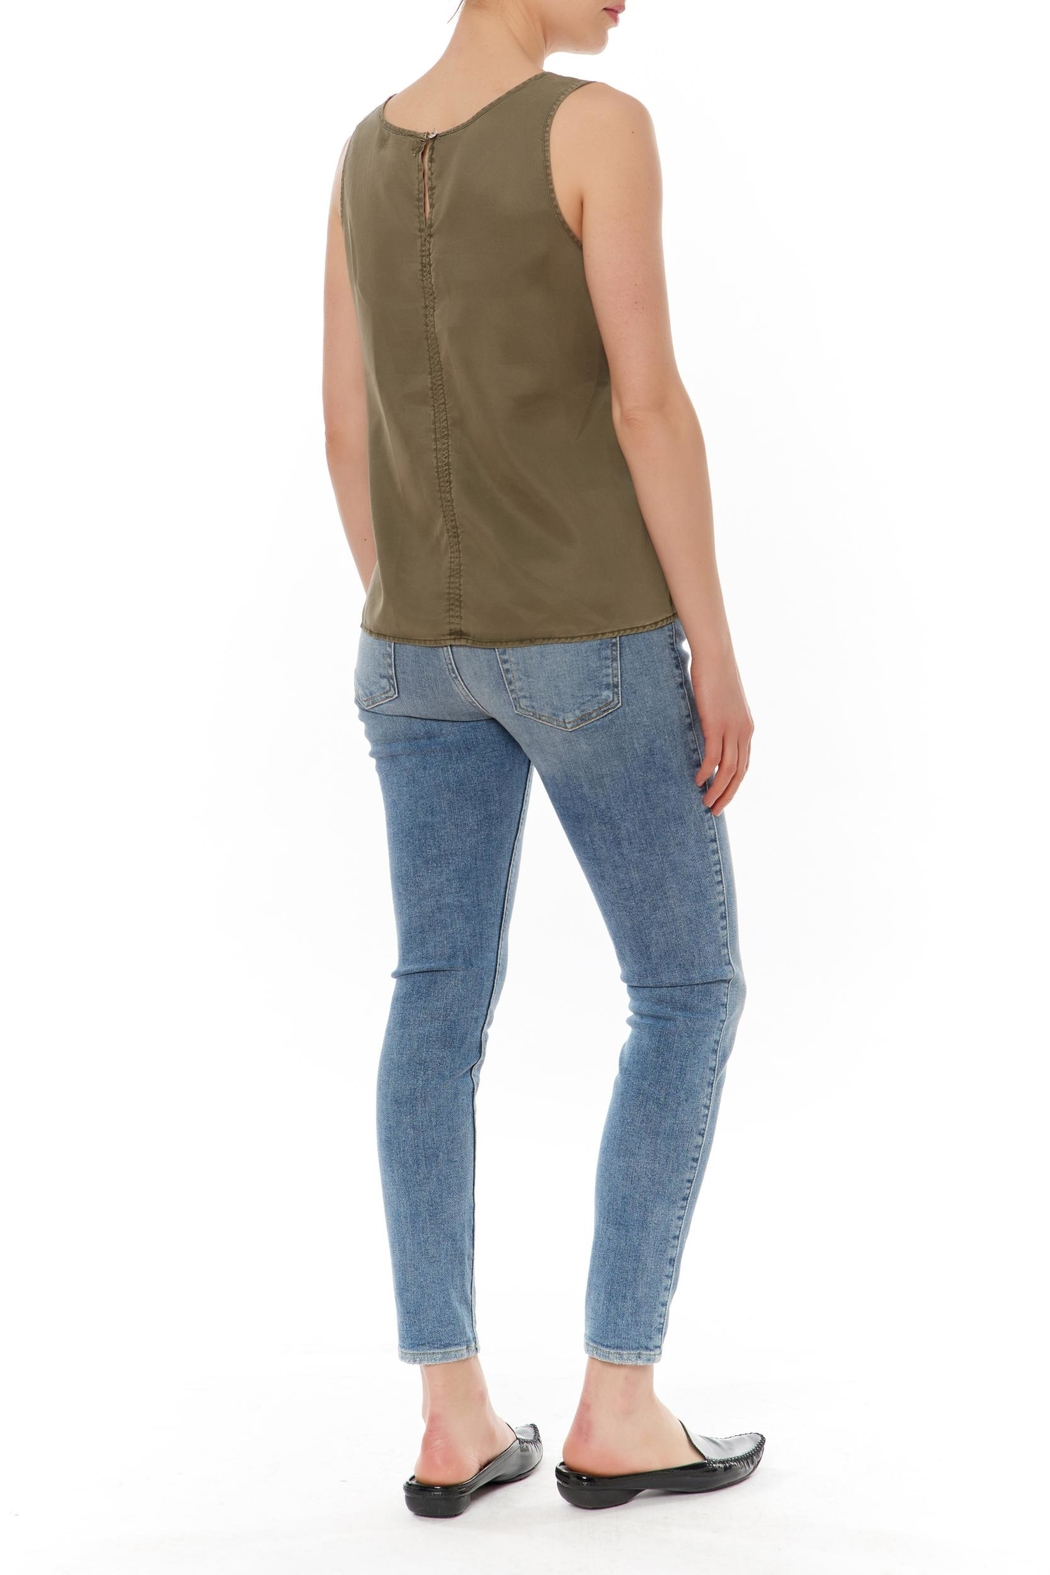 J HARPER Sleeveless Olive Top - Front Full Image